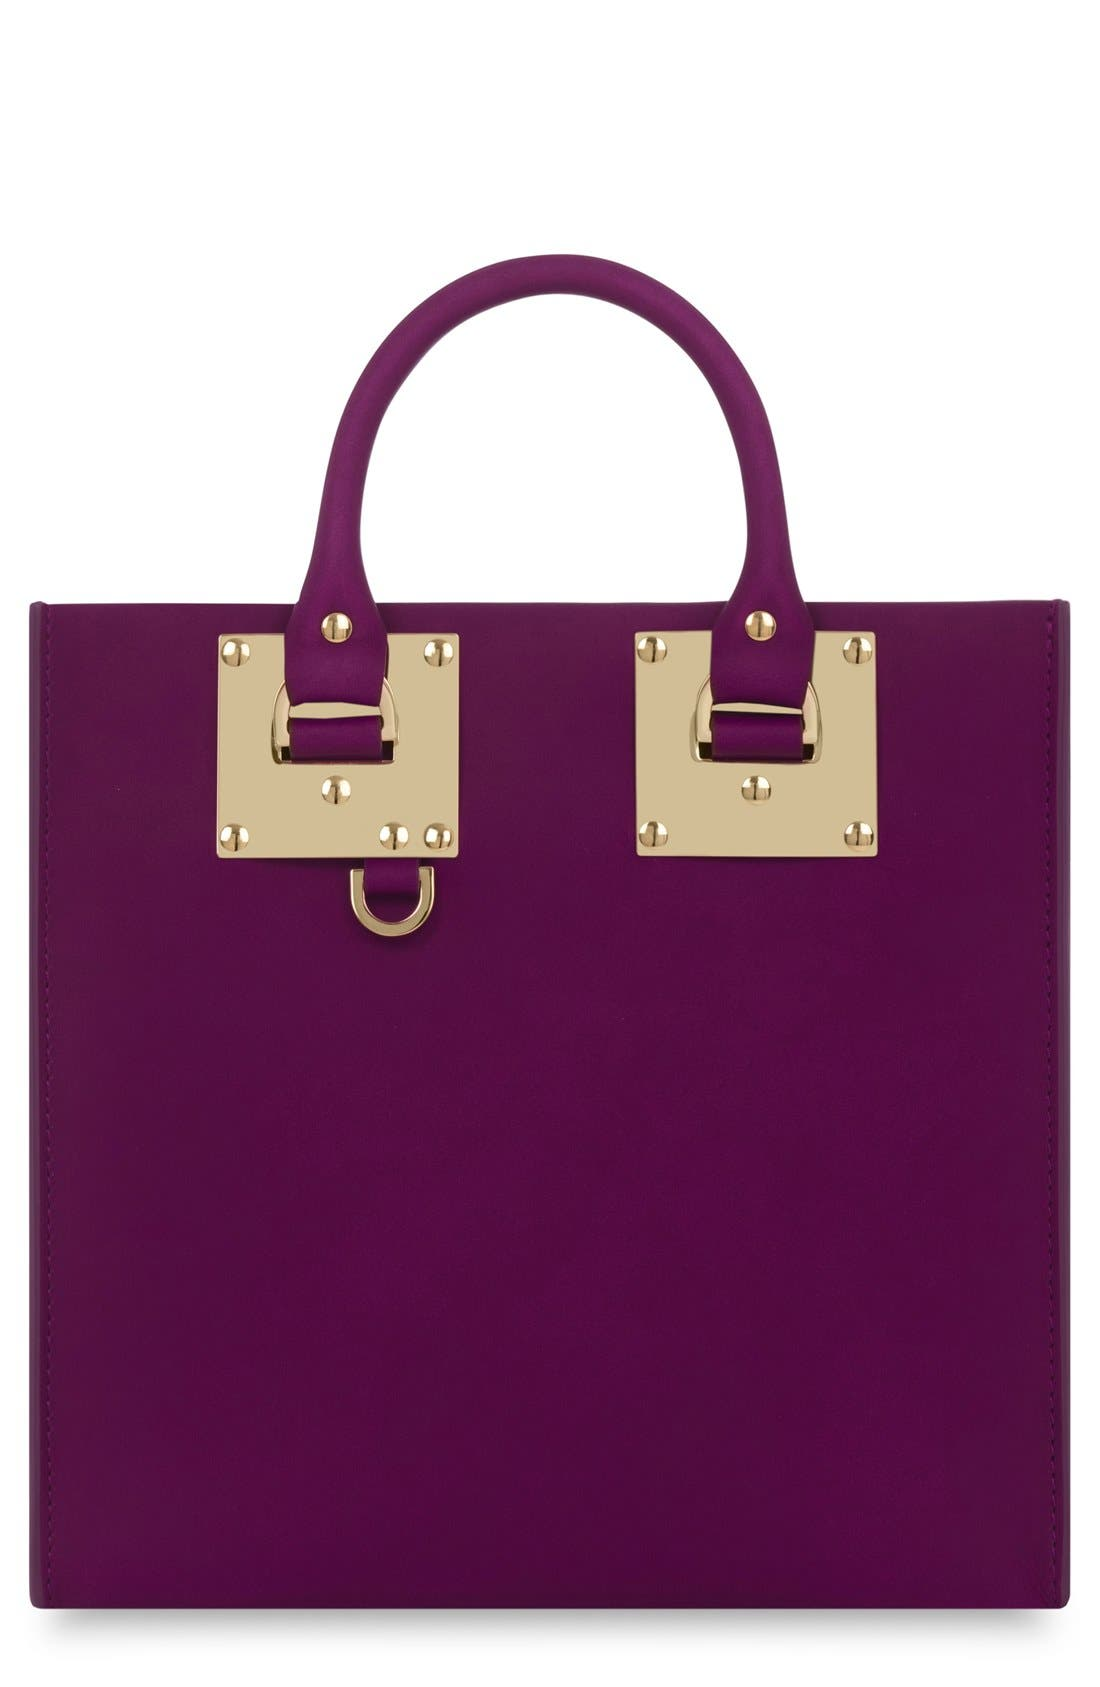 Alternate Image 1 Selected - Sophie Hulme Albion Square Leather Tote